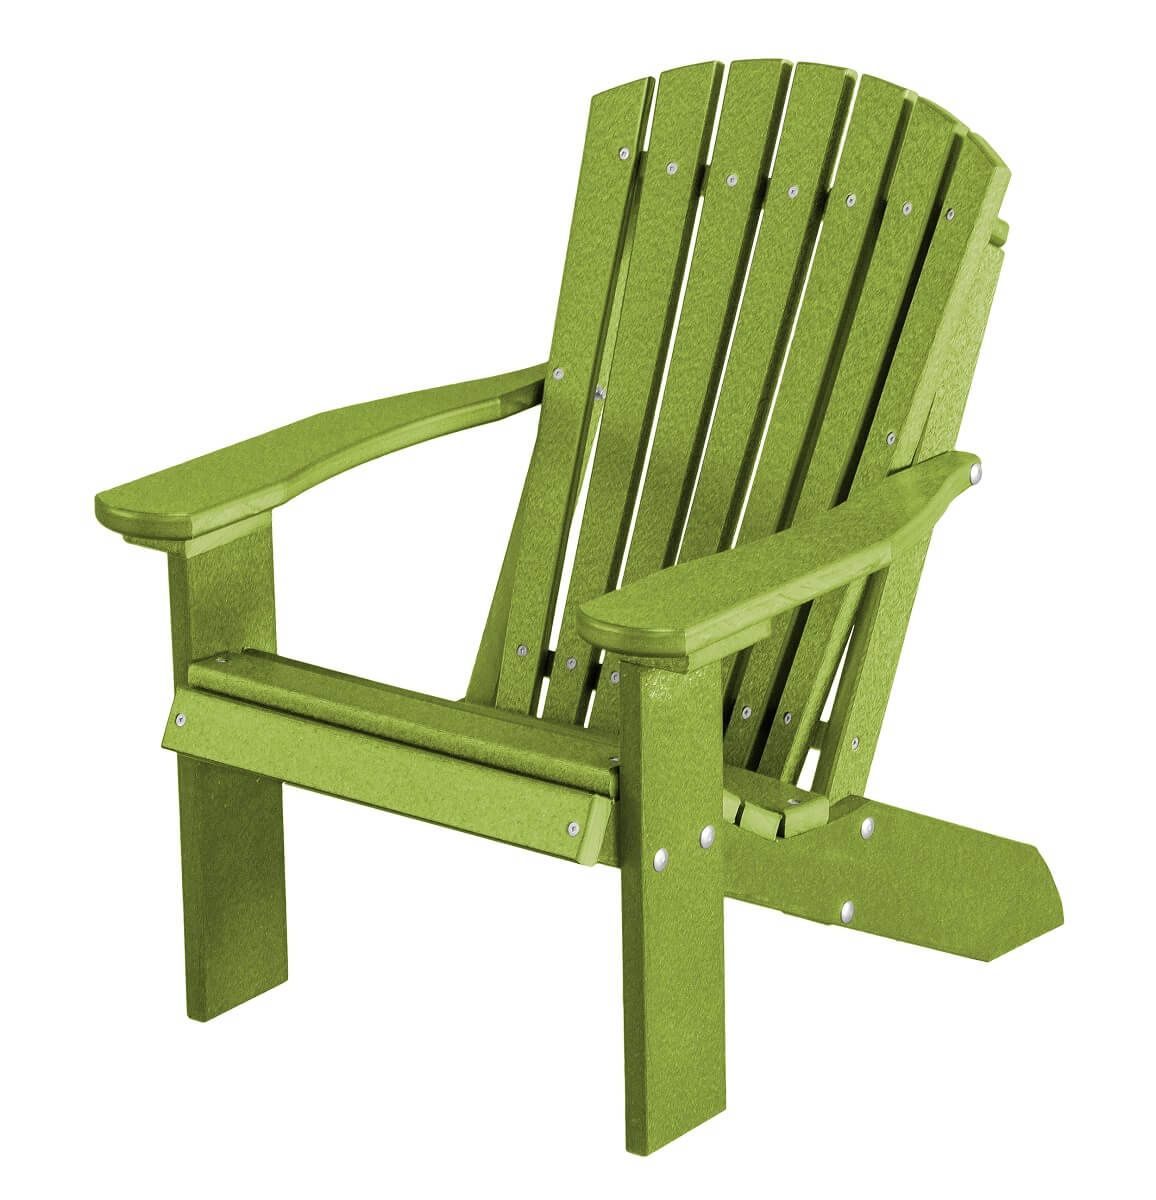 Lime Green Sidra Child's Adirondack Chair